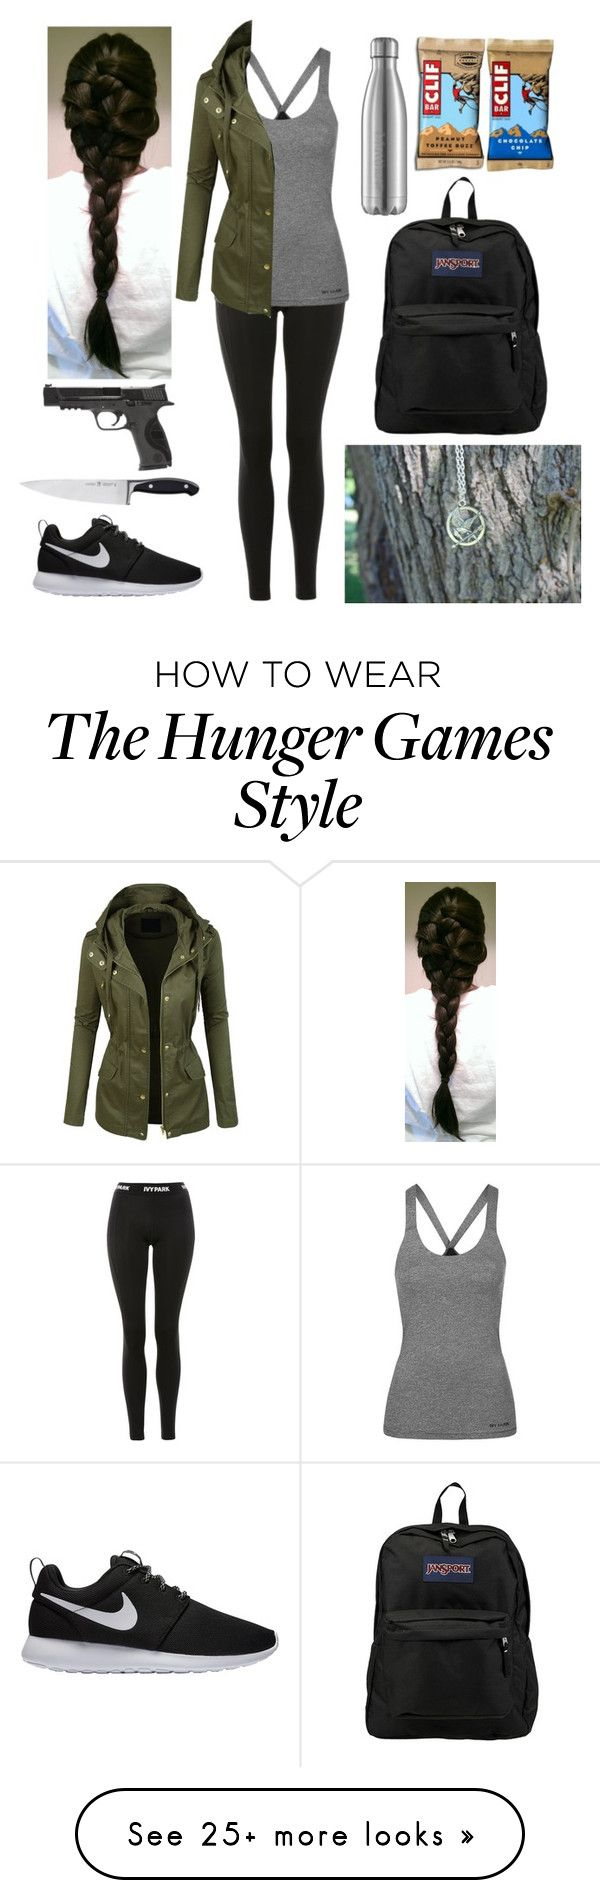 """""""Ready for the apocalypse"""" by harrypotter-gurl on Polyvore featuring Topshop, LE3NO, NIKE, JanSport, Zwilling and Smith & Wesson"""